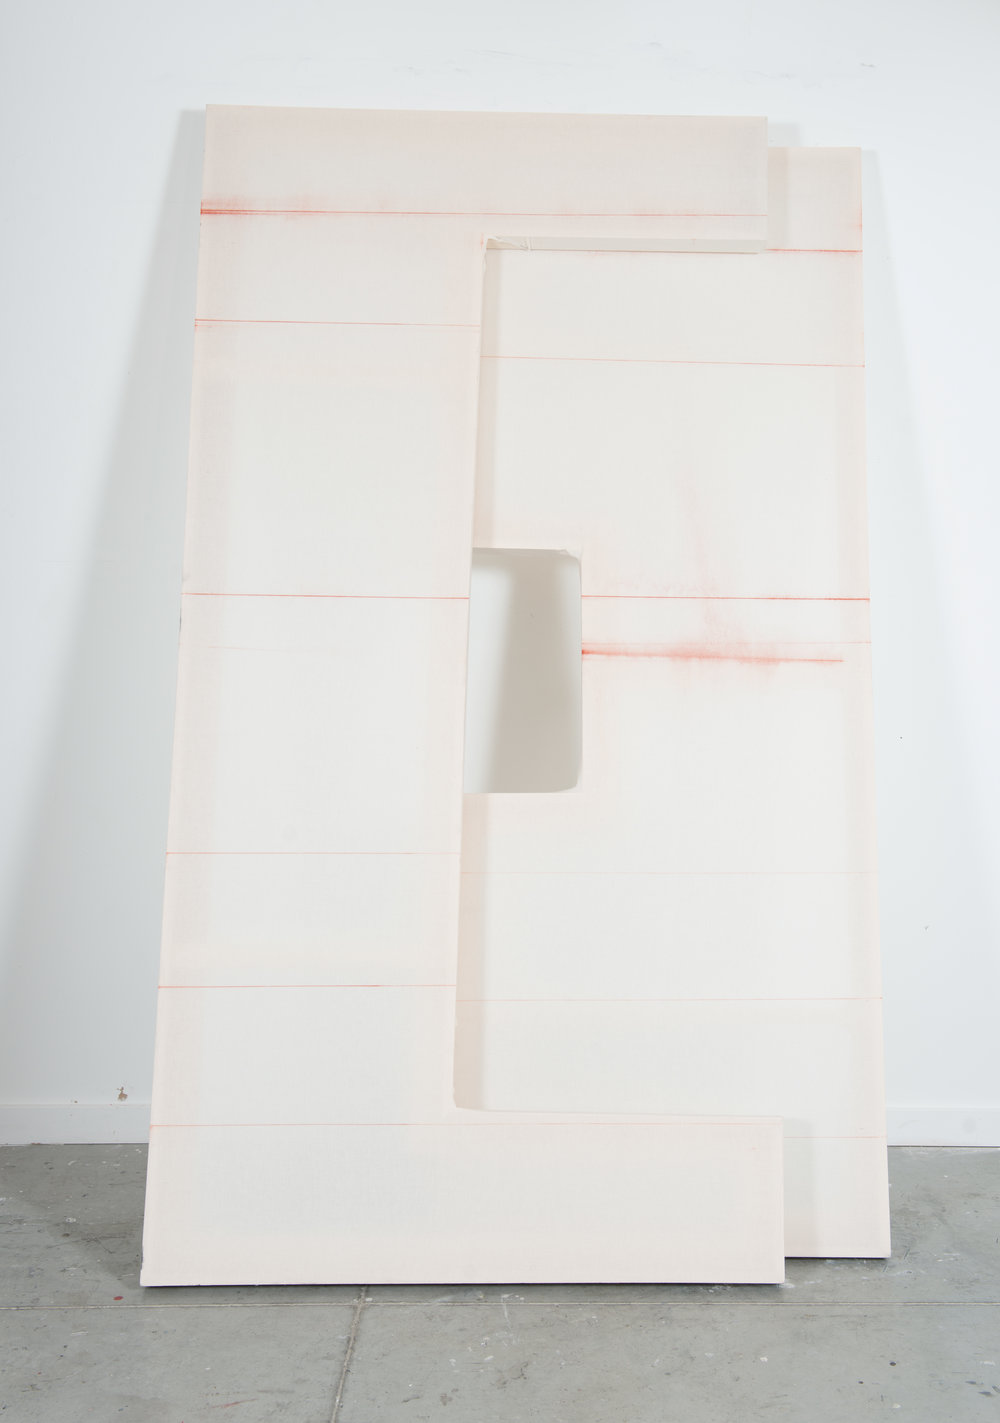 "That Moment When Things Are Not Absolutely Congealed, Dead,016, chalk, muslin, wood, 96"" X 60"" X 2.5"" (overall dimensions)"